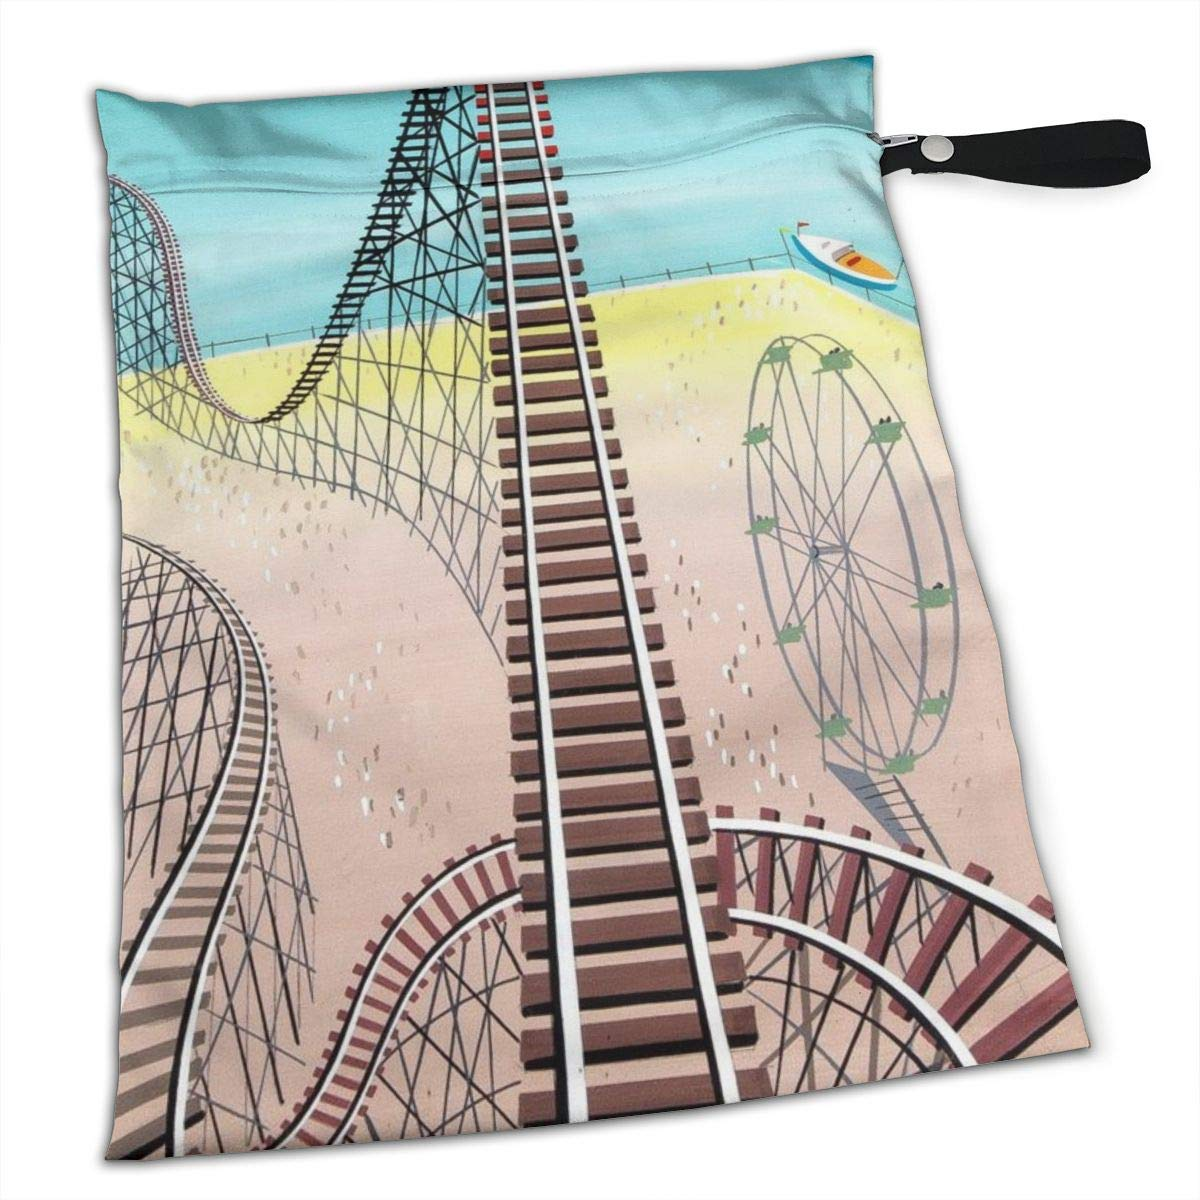 Pumnims Roller Coaster for Swimsuit and Towels Waterproof Kids Baby Boy Clothes Diaper Hanging Reusable Menstrual Sanitary Cloth Pads Handle Wristlet Portable Wet-Dry Bag by Pumnims